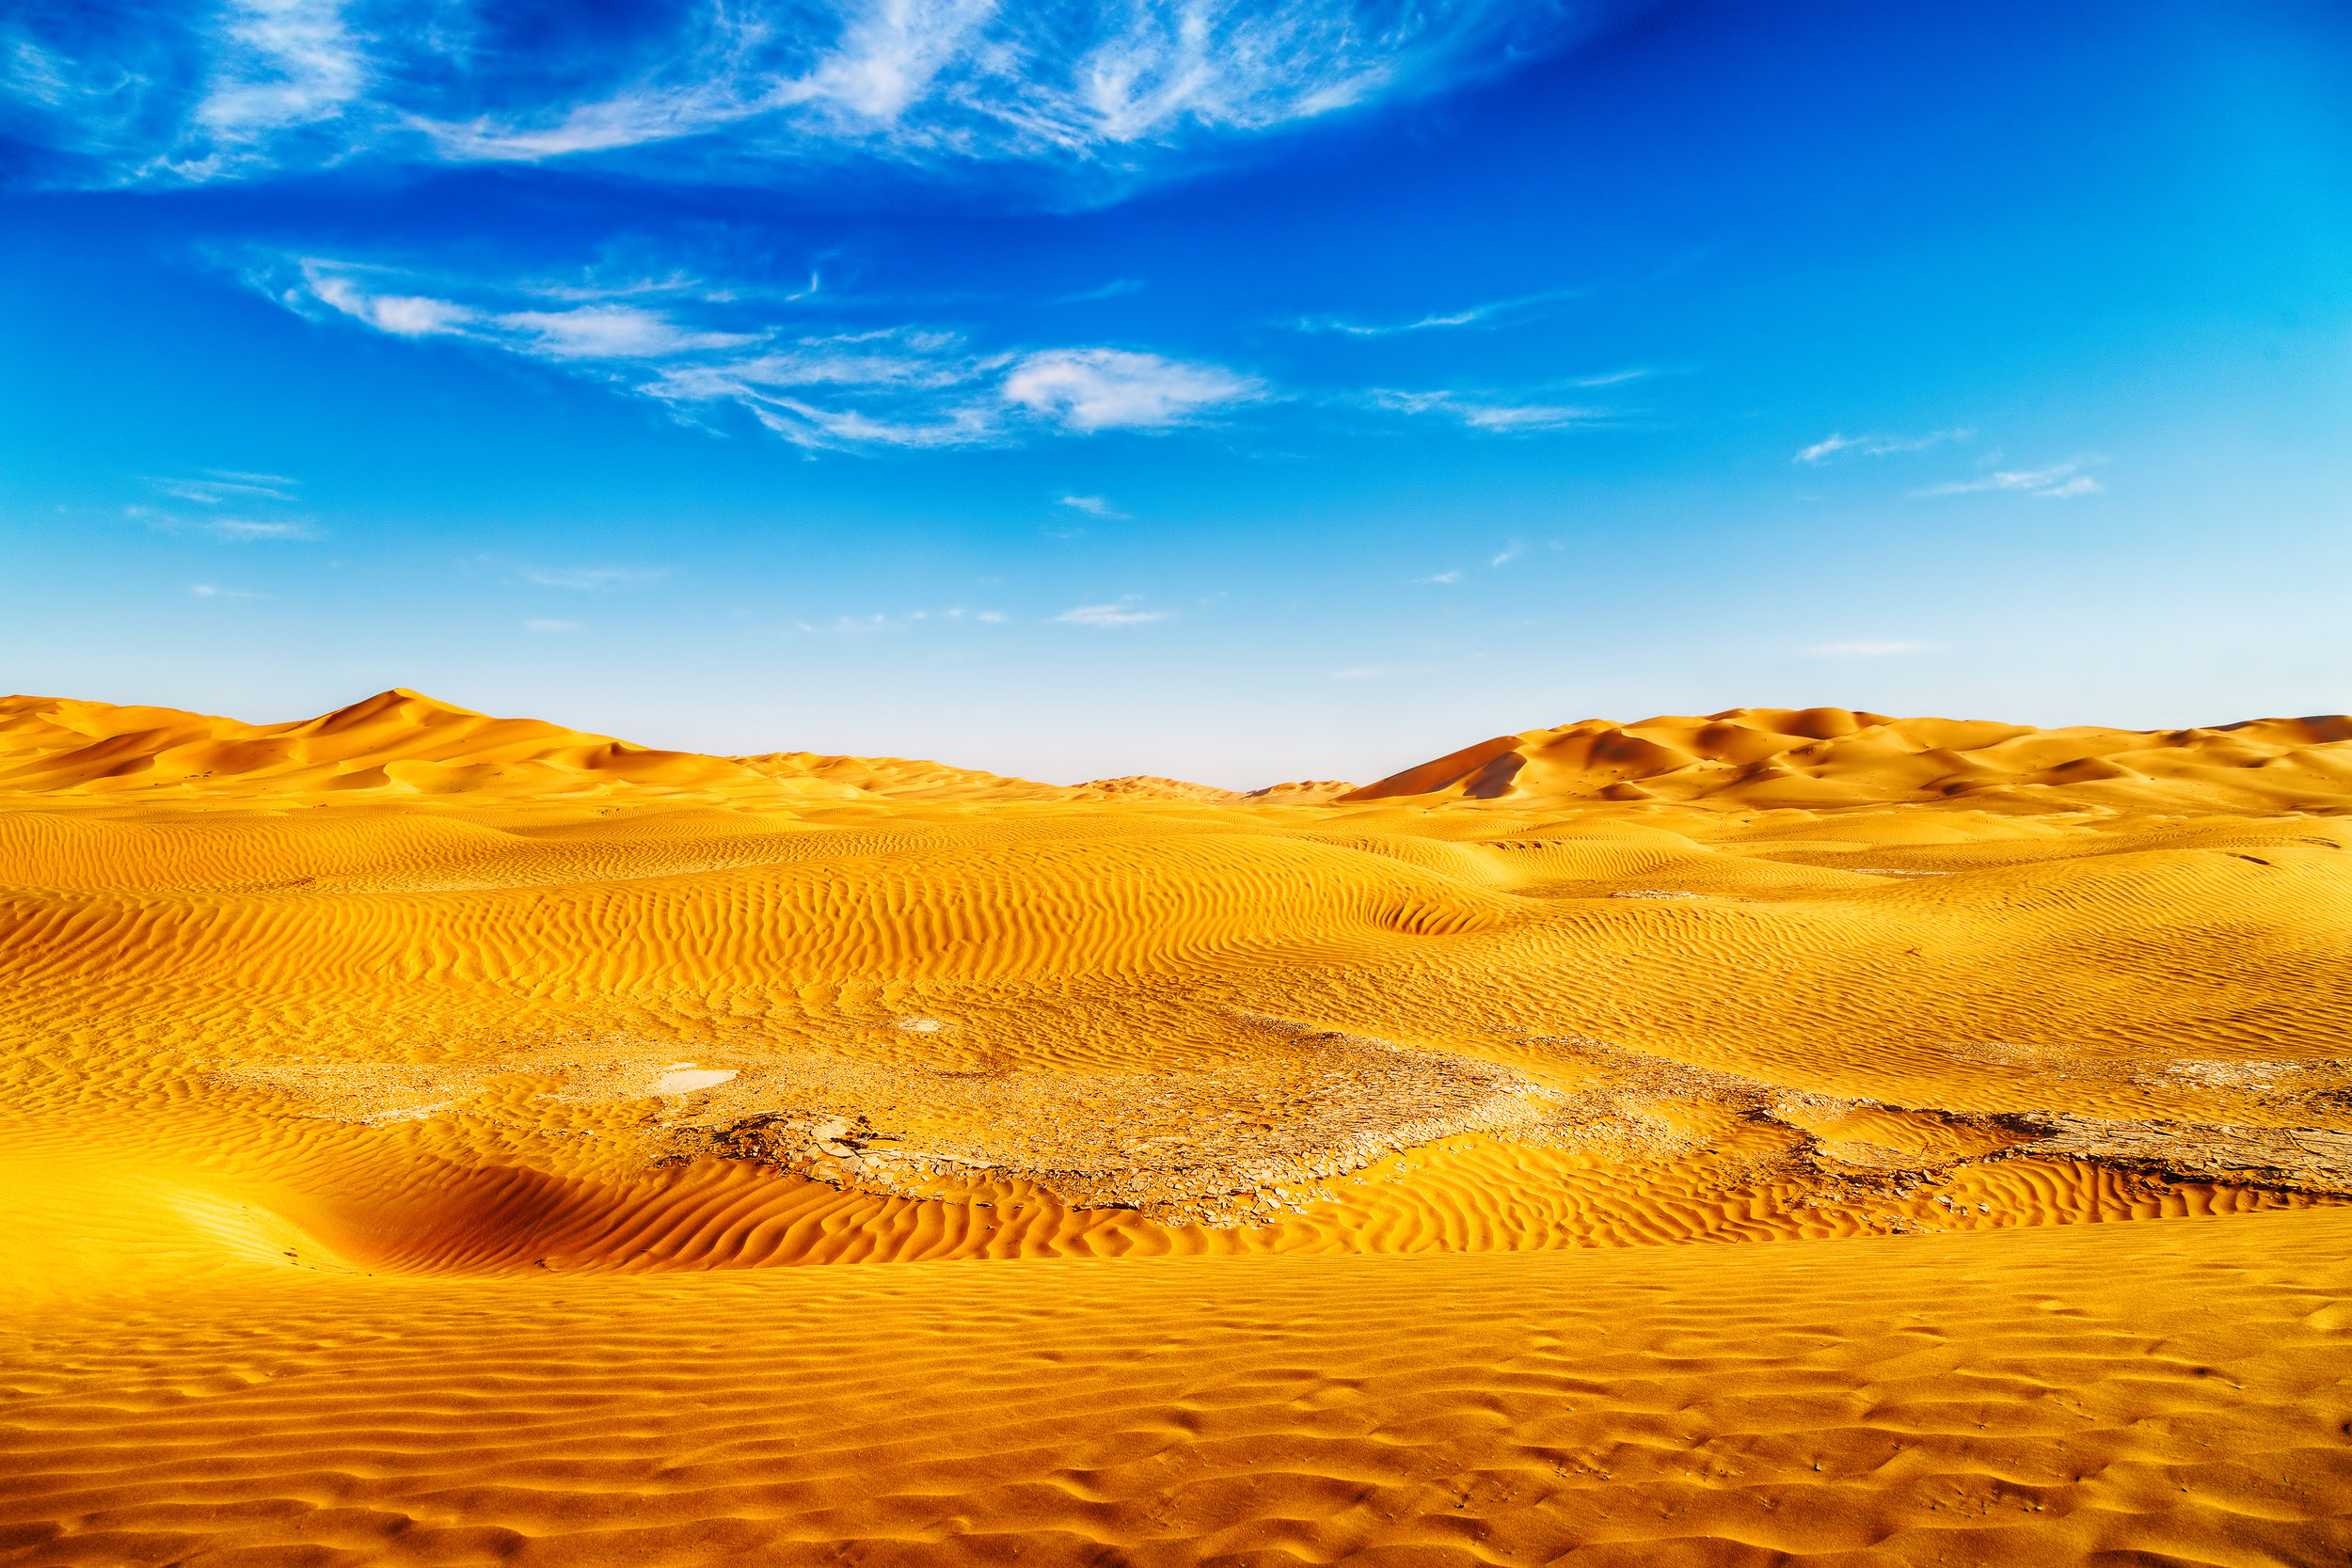 A desert is an area that gets less than 10 inches of rain per year.